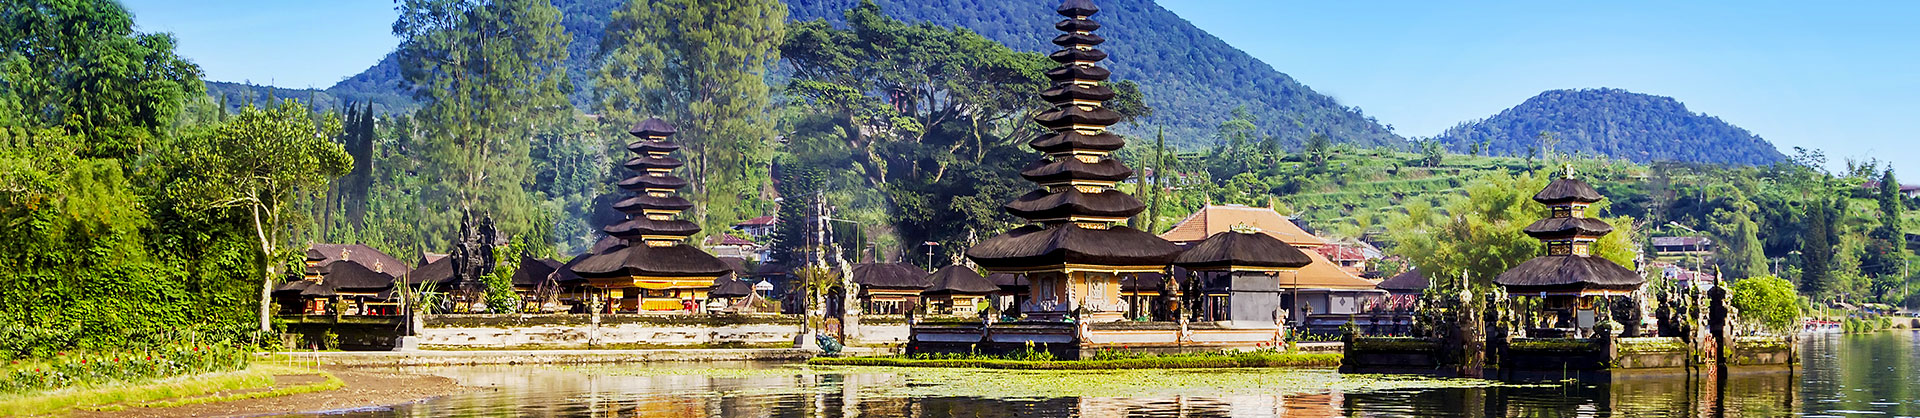 For Australians, Bali is just a hop, skip and jump away, and first choice for many looking to kick back and relax on a sun-filled escape. While the locals may be more than happy to cater for visitors...read more